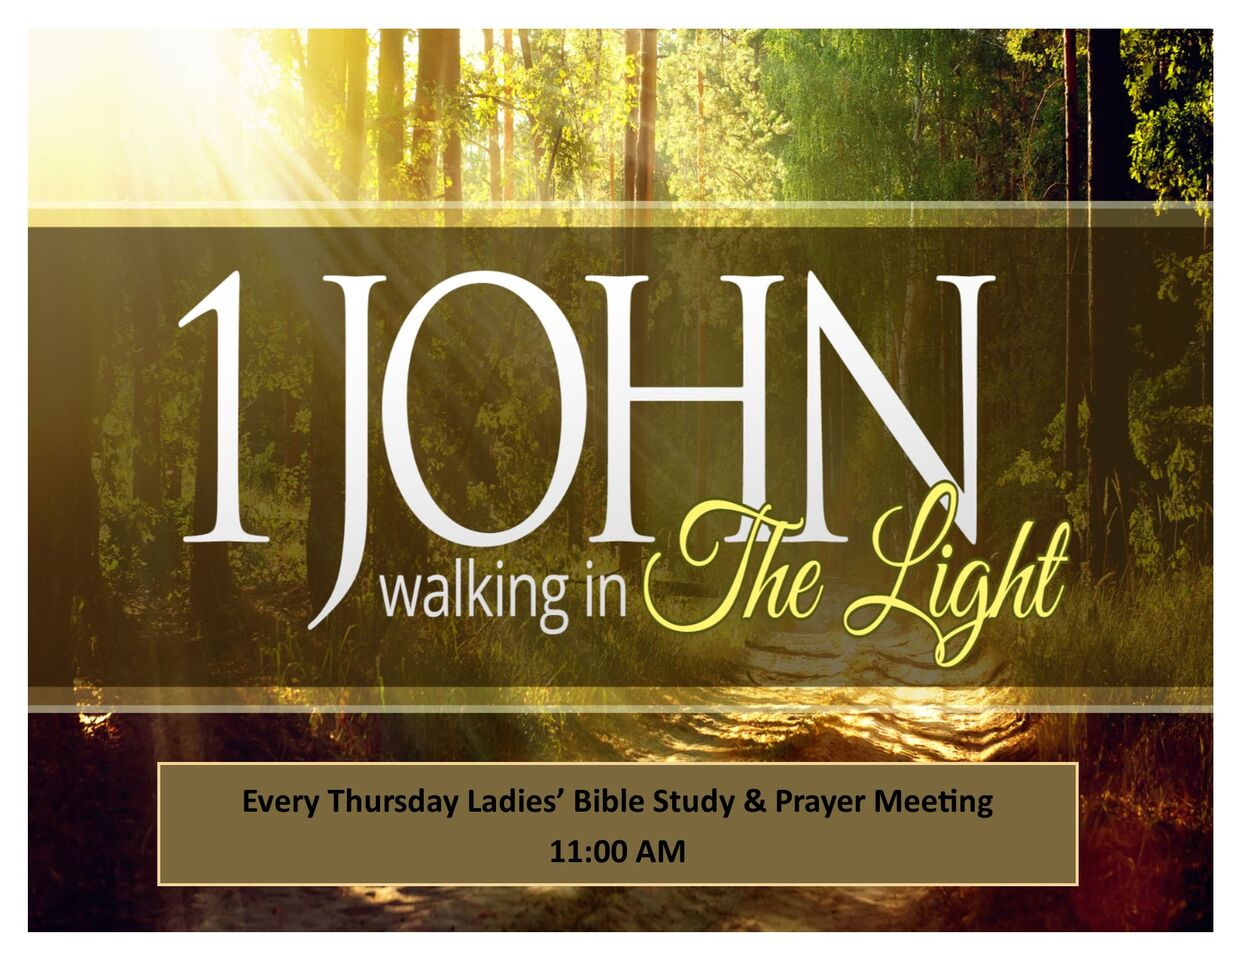 ntcca-churches-image-folder/az-glendale-images/Womens-Bible-Study